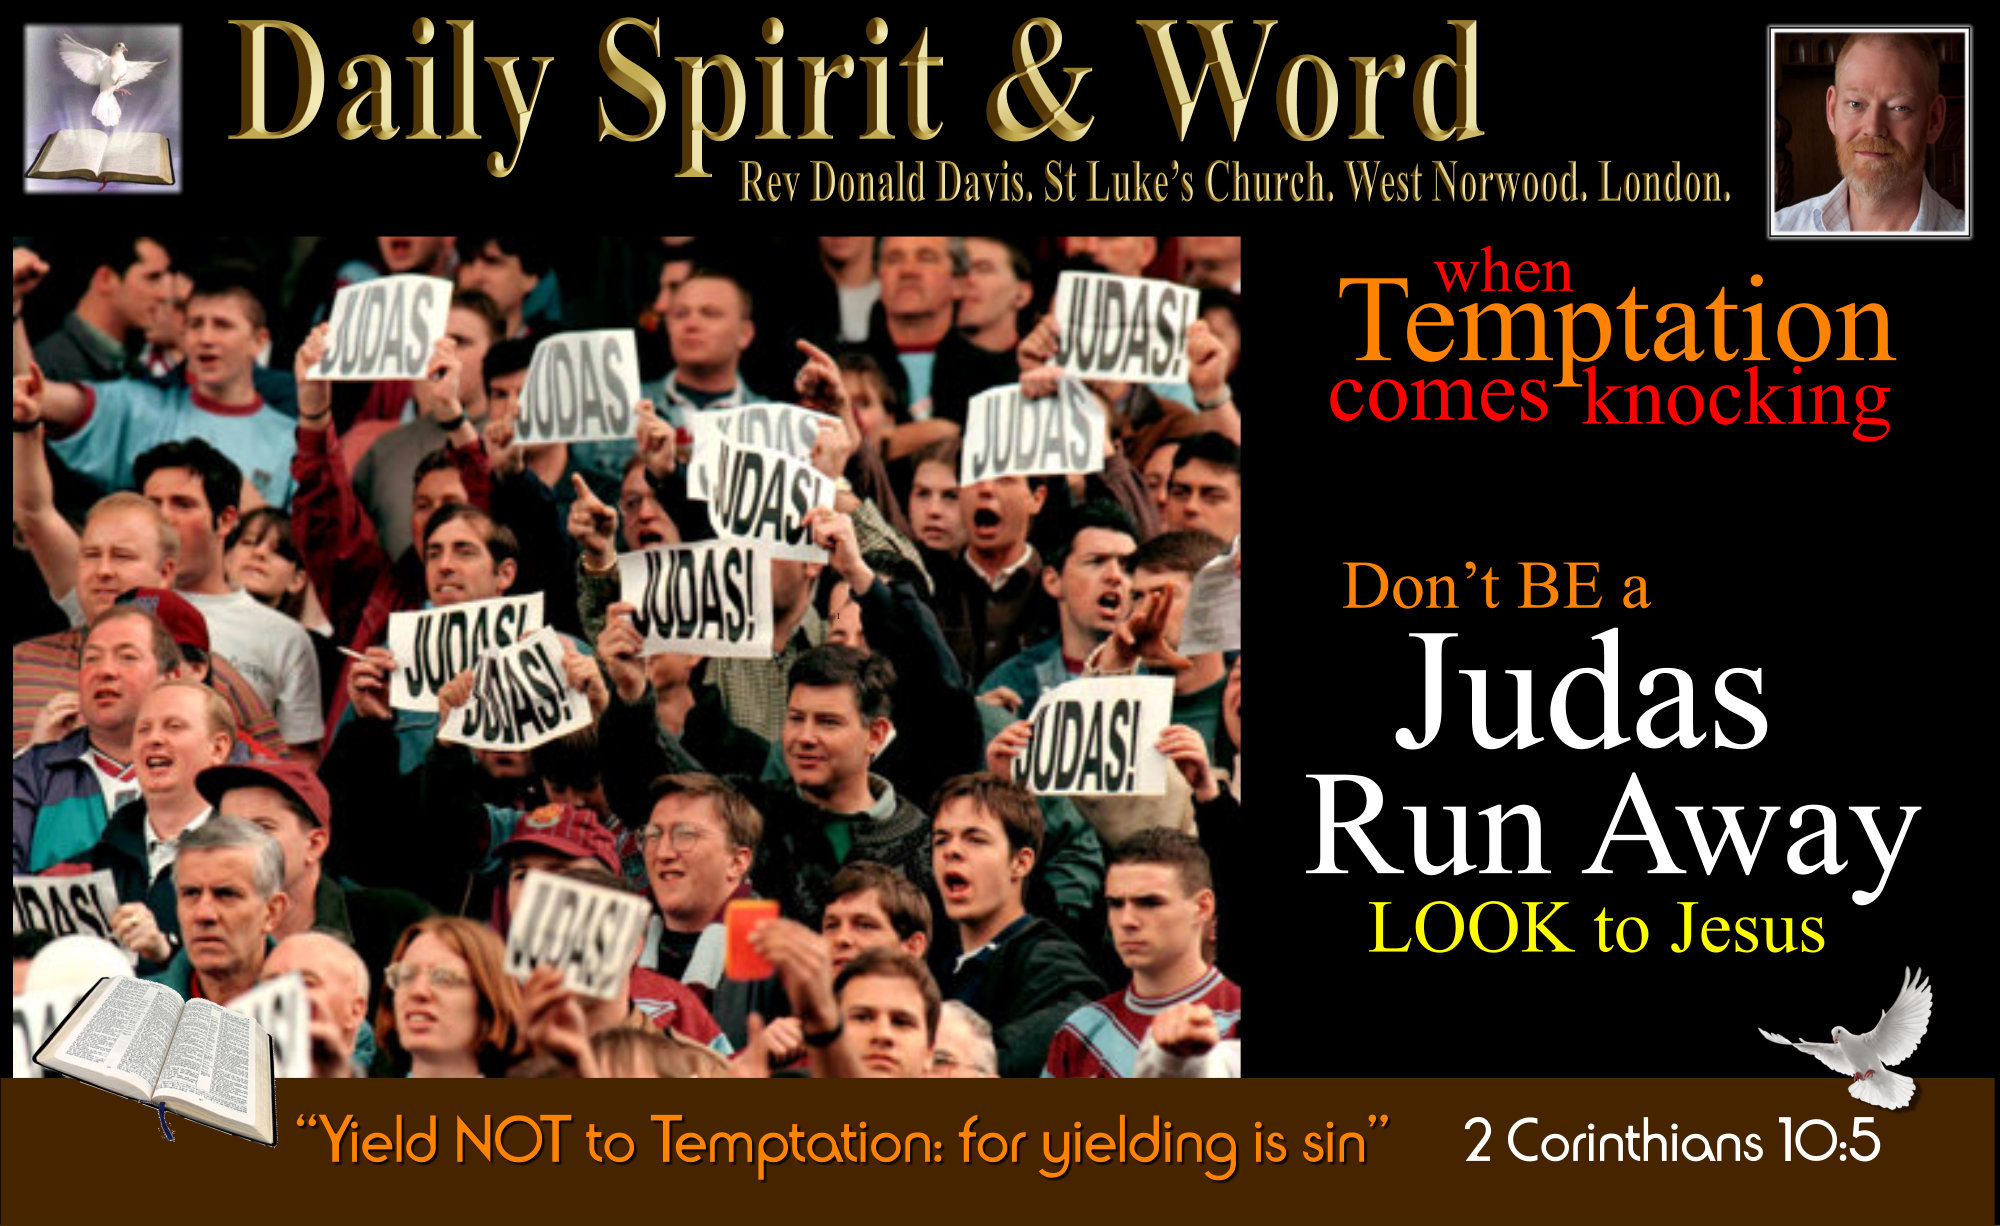 flee temptation, run away,